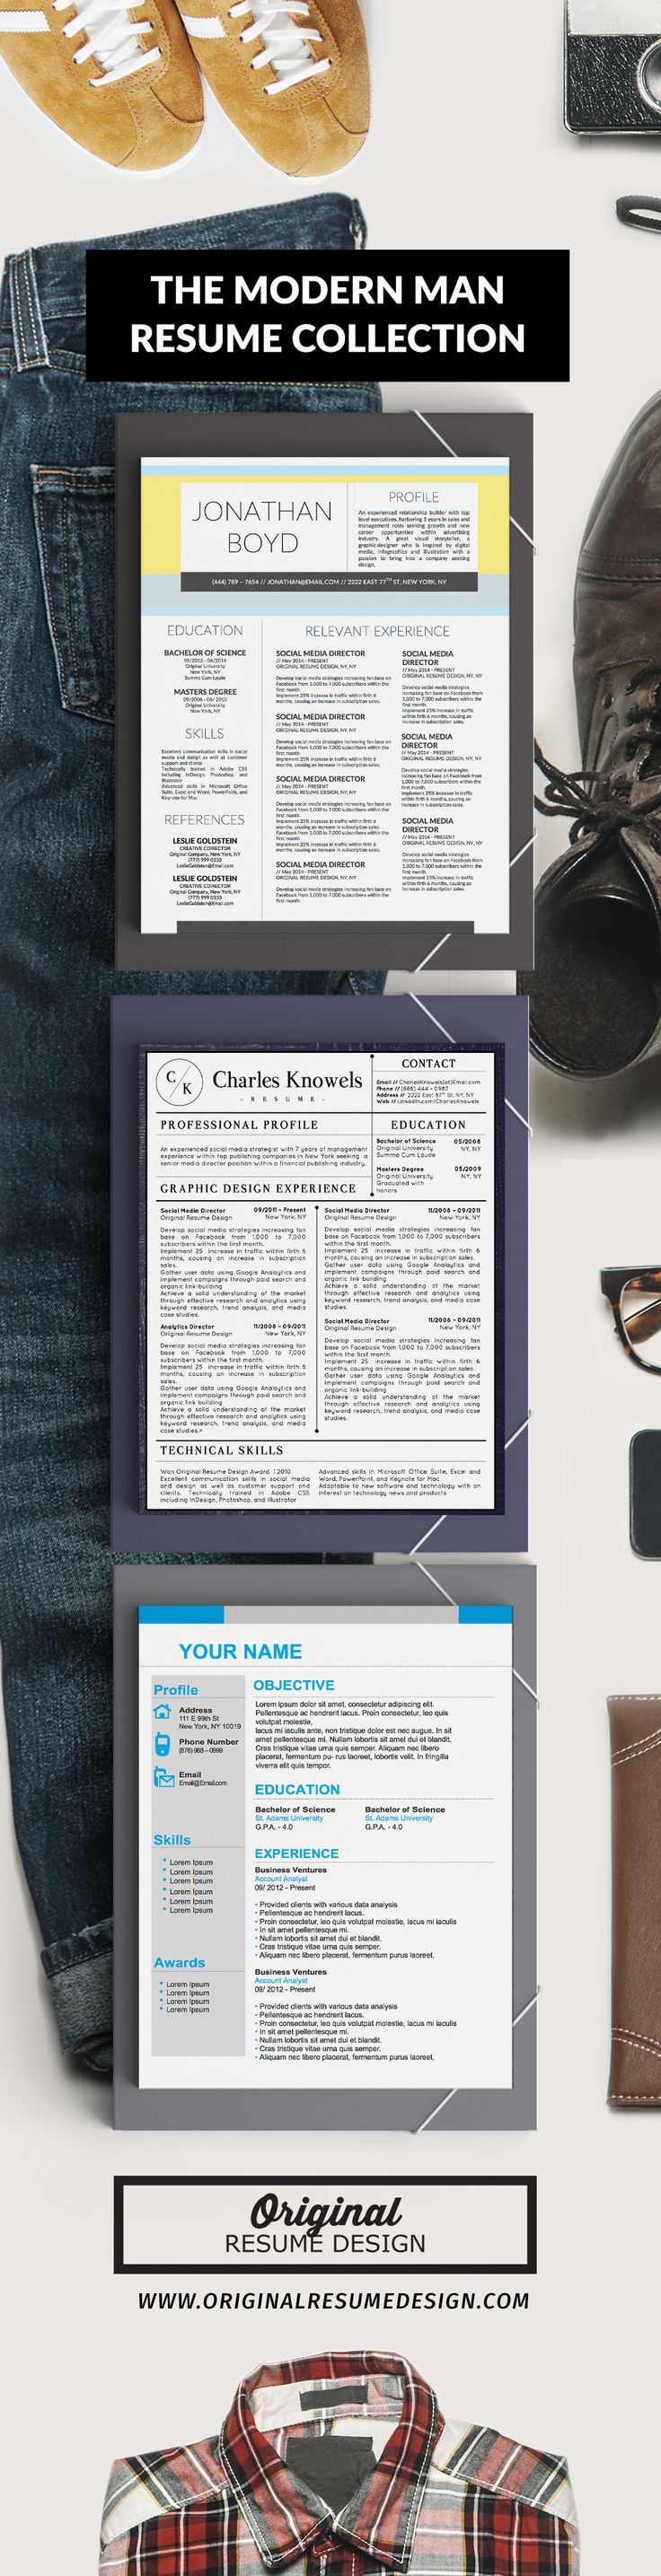 Cute 010 Editor Templates Thin 1 Page Resume Templates Square 1 Year Experienced Java Resume 1.25 Button Template Youthful 10 Best Resume Services Dark10 Business Card Template  Resume On Pinterest | Cool ..